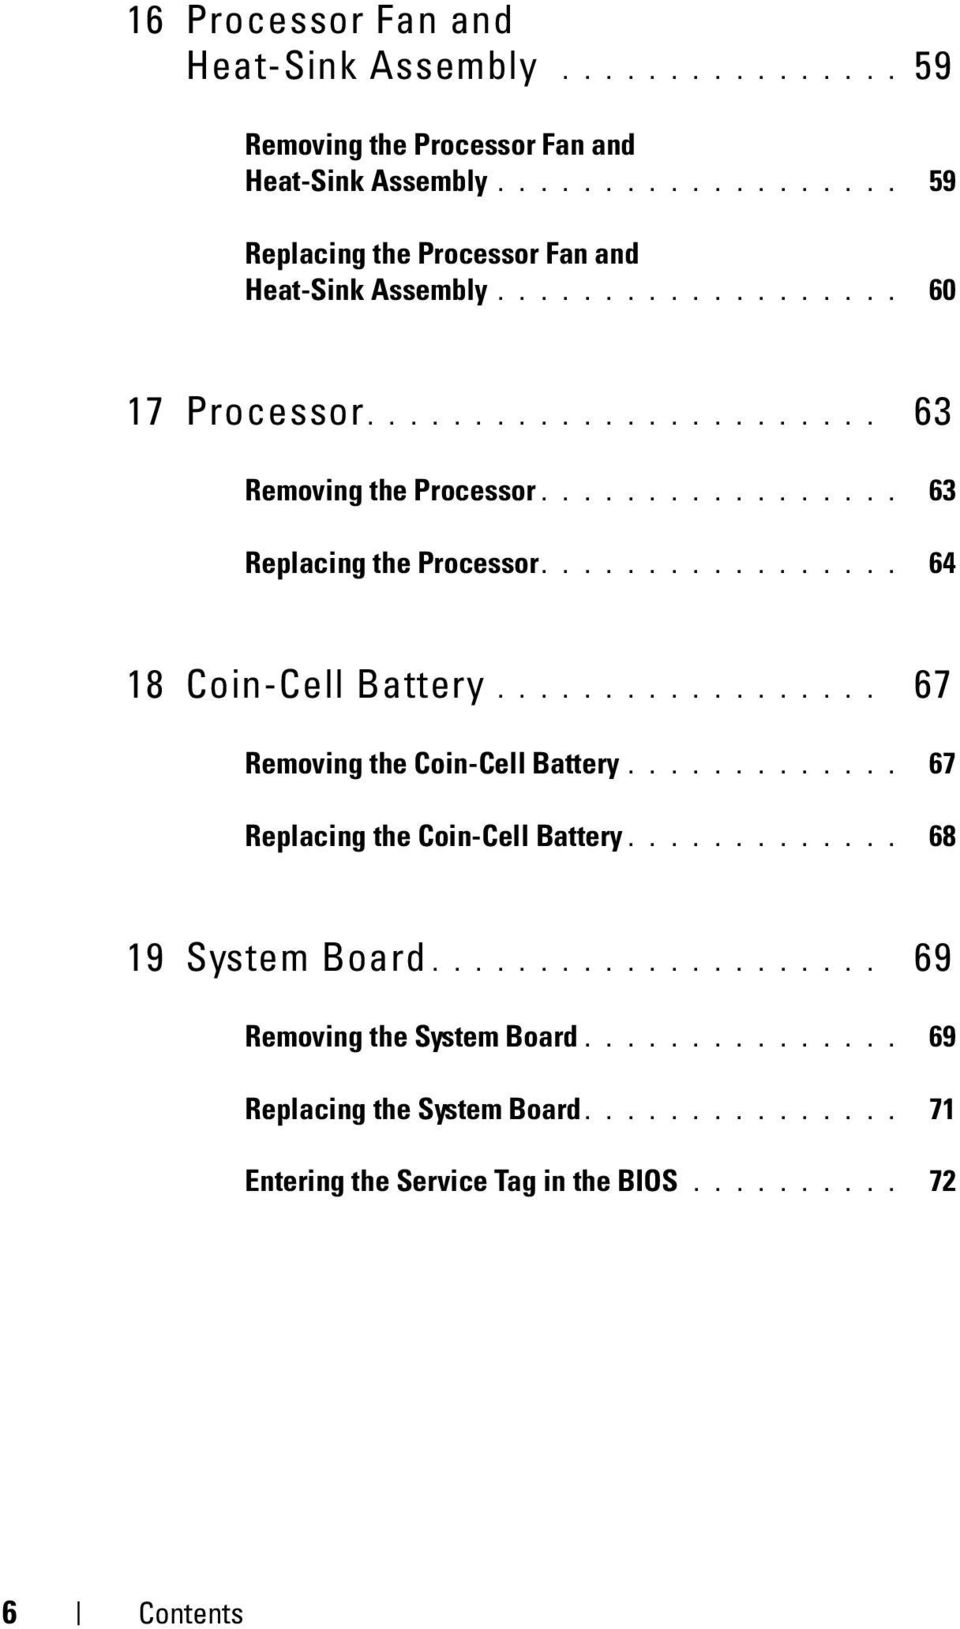 ................. 67 Removing the Coin-Cell Battery............. 67 Replacing the Coin-Cell Battery............. 68 19 System Board..................... 69 Removing the System Board.